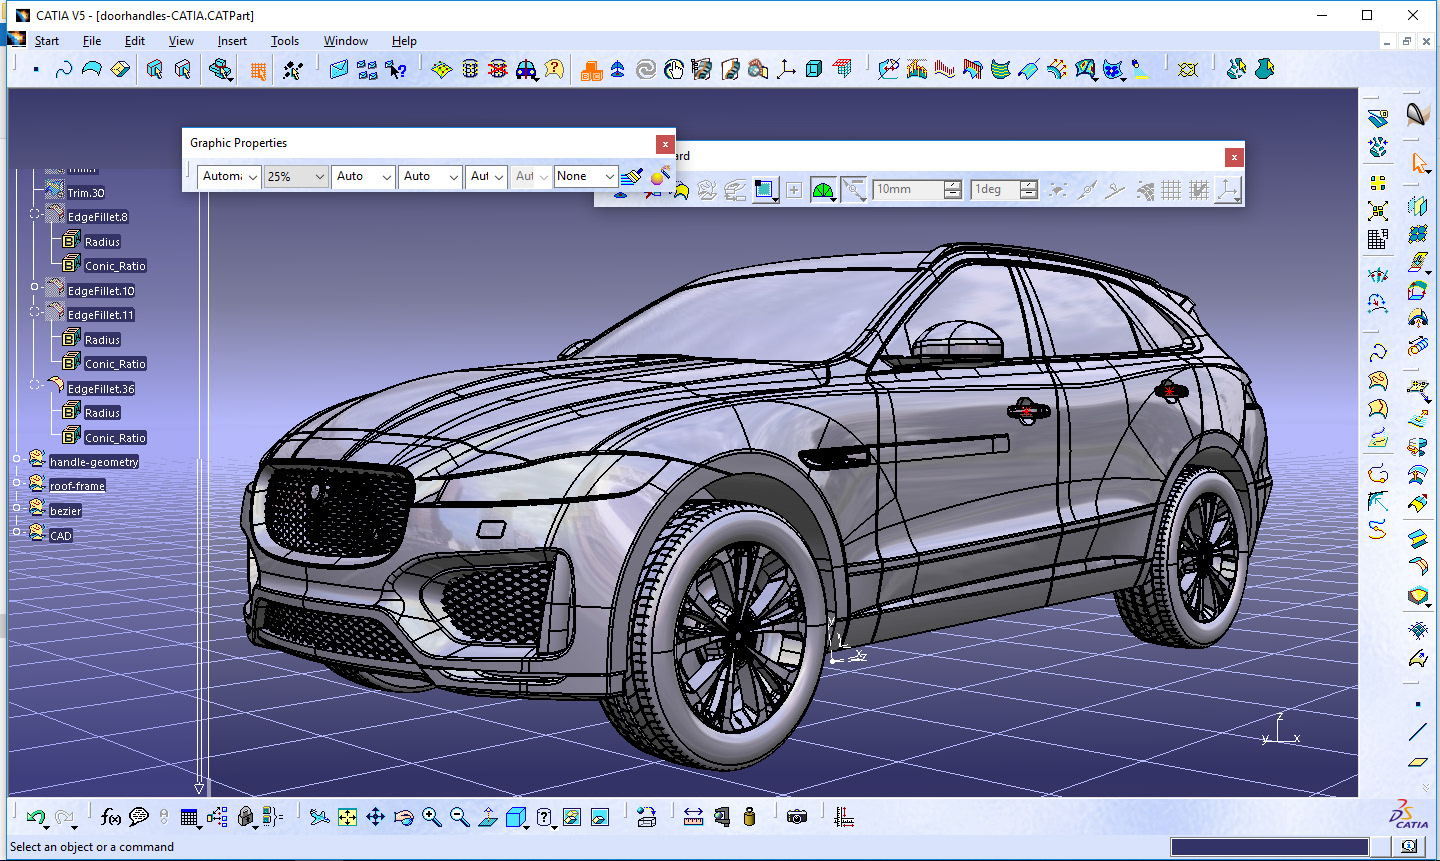 Jaguar F-pace Alias/dynamo/catia Tutorial- breakdown on Behance